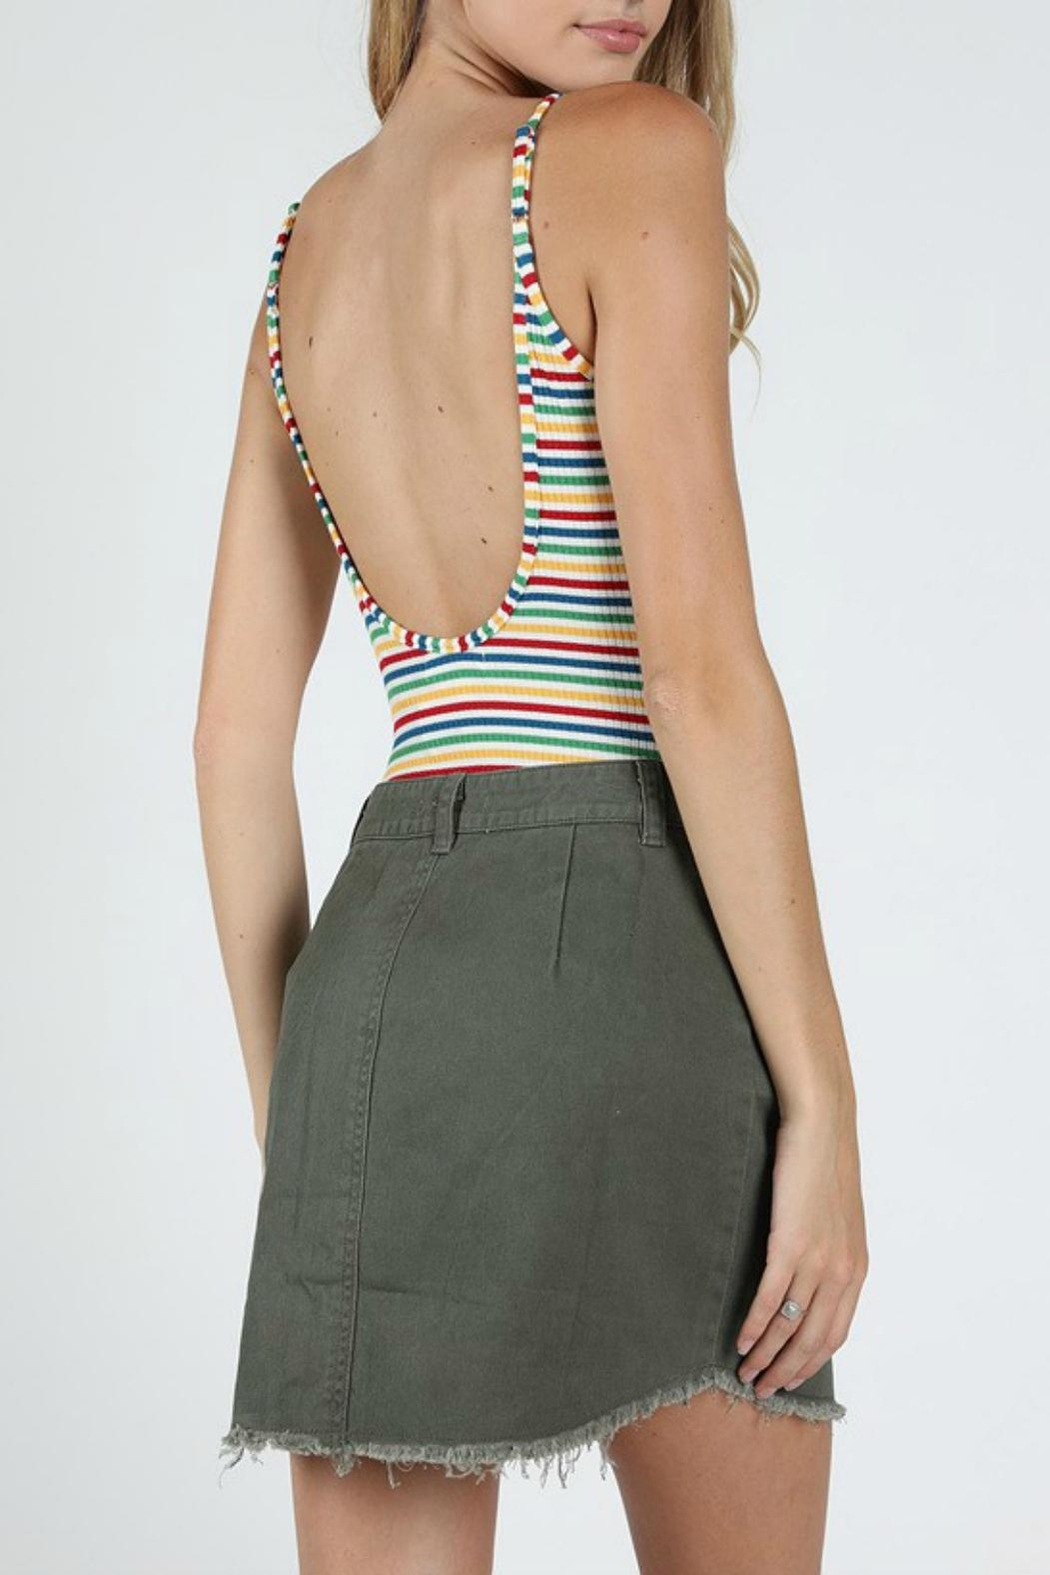 Pretty Little Things Rainbow Backless Bodysuit - Front Full Image